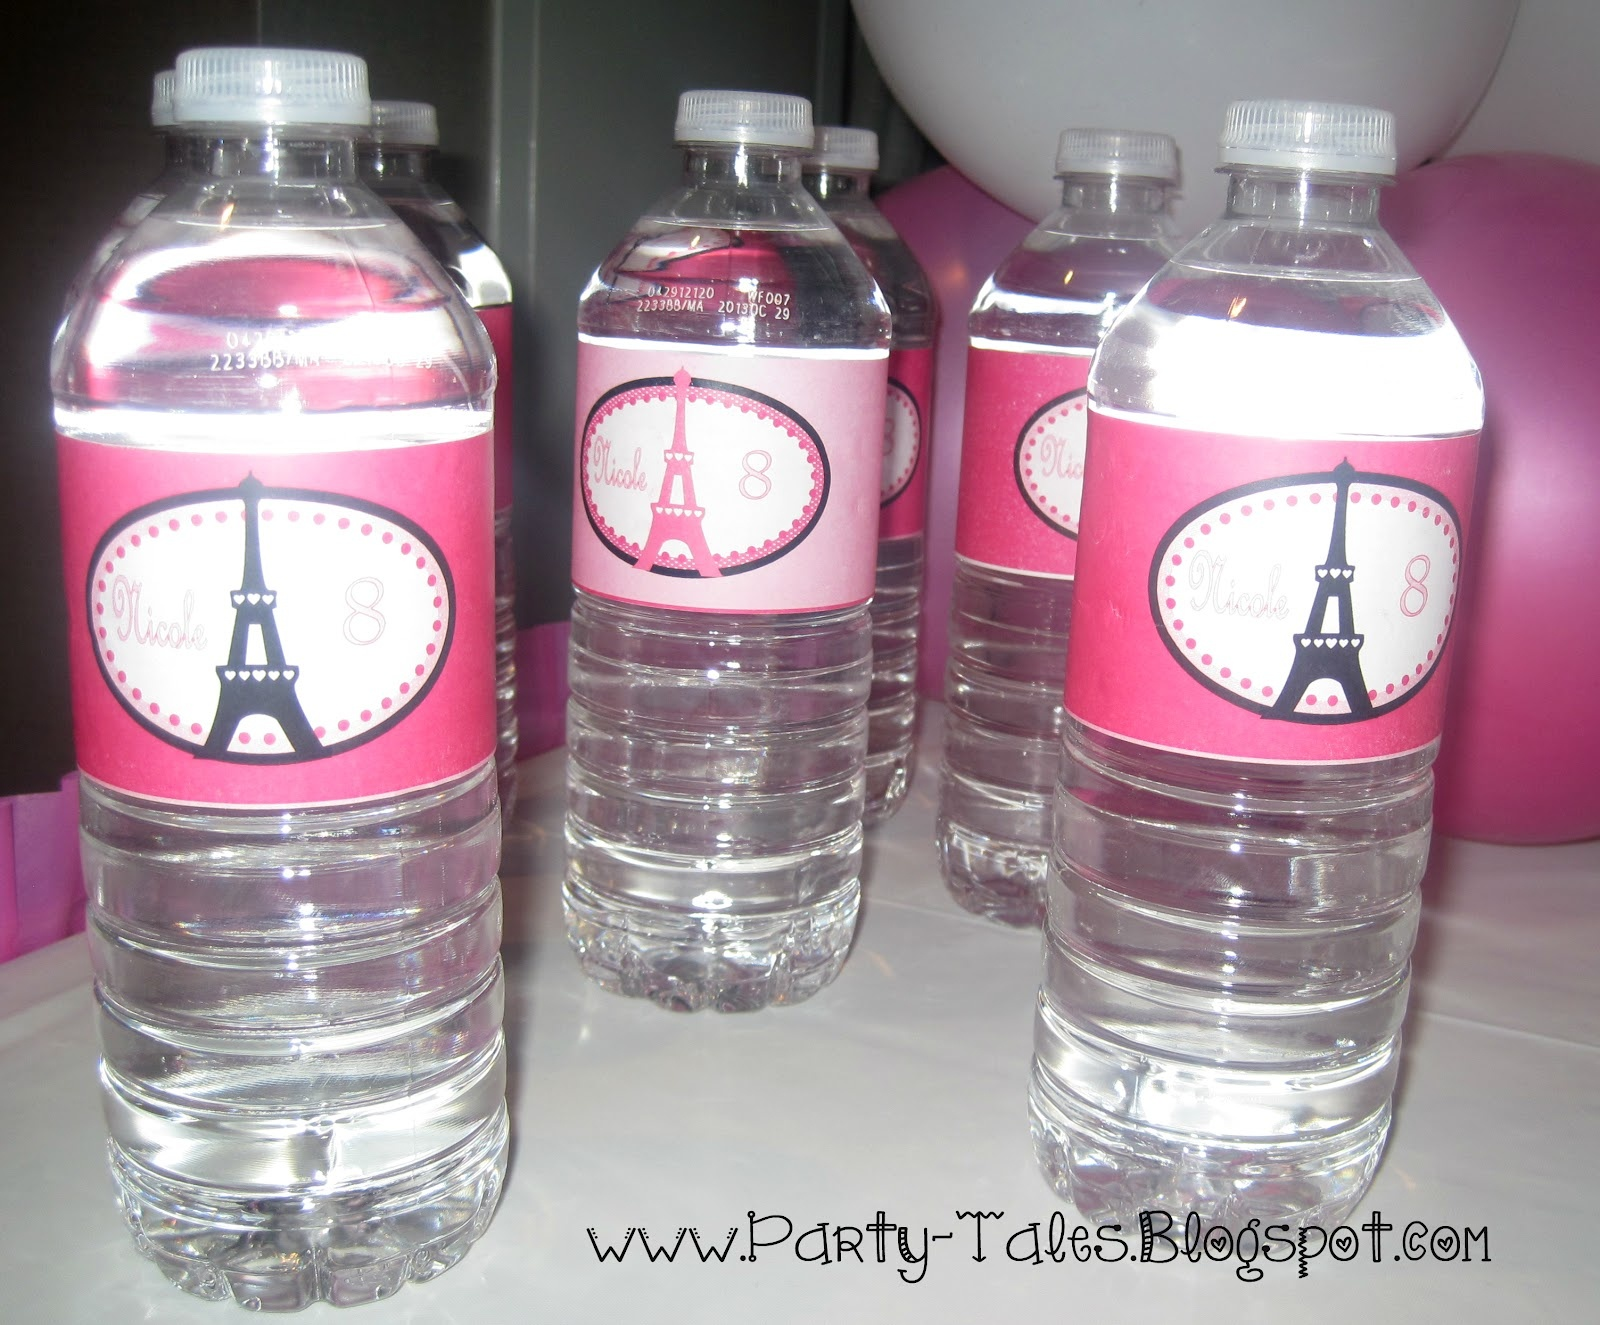 Party-Tales: July 2012 - Free Printable Paris Water Bottle Labels